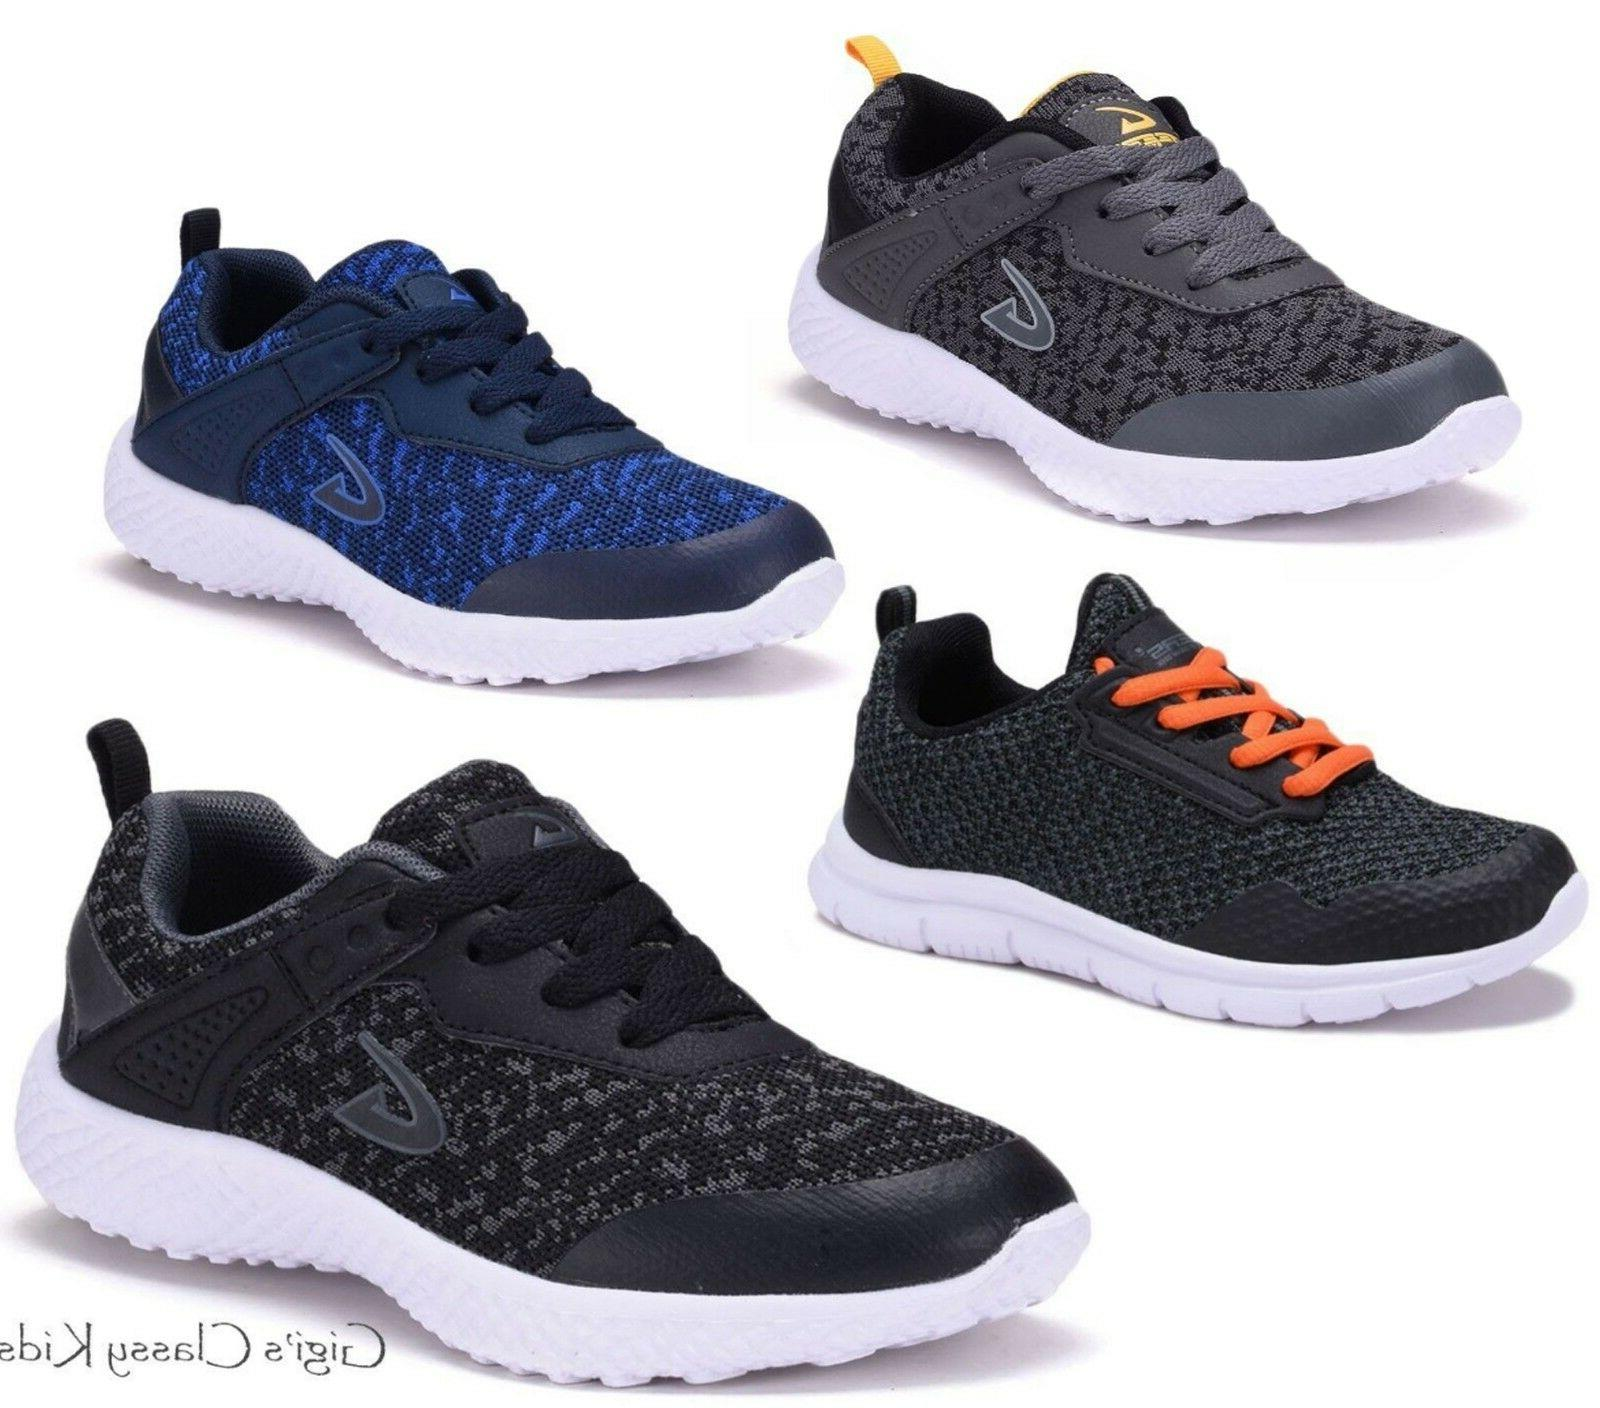 new boys girls tennis shoes athletic sneakers